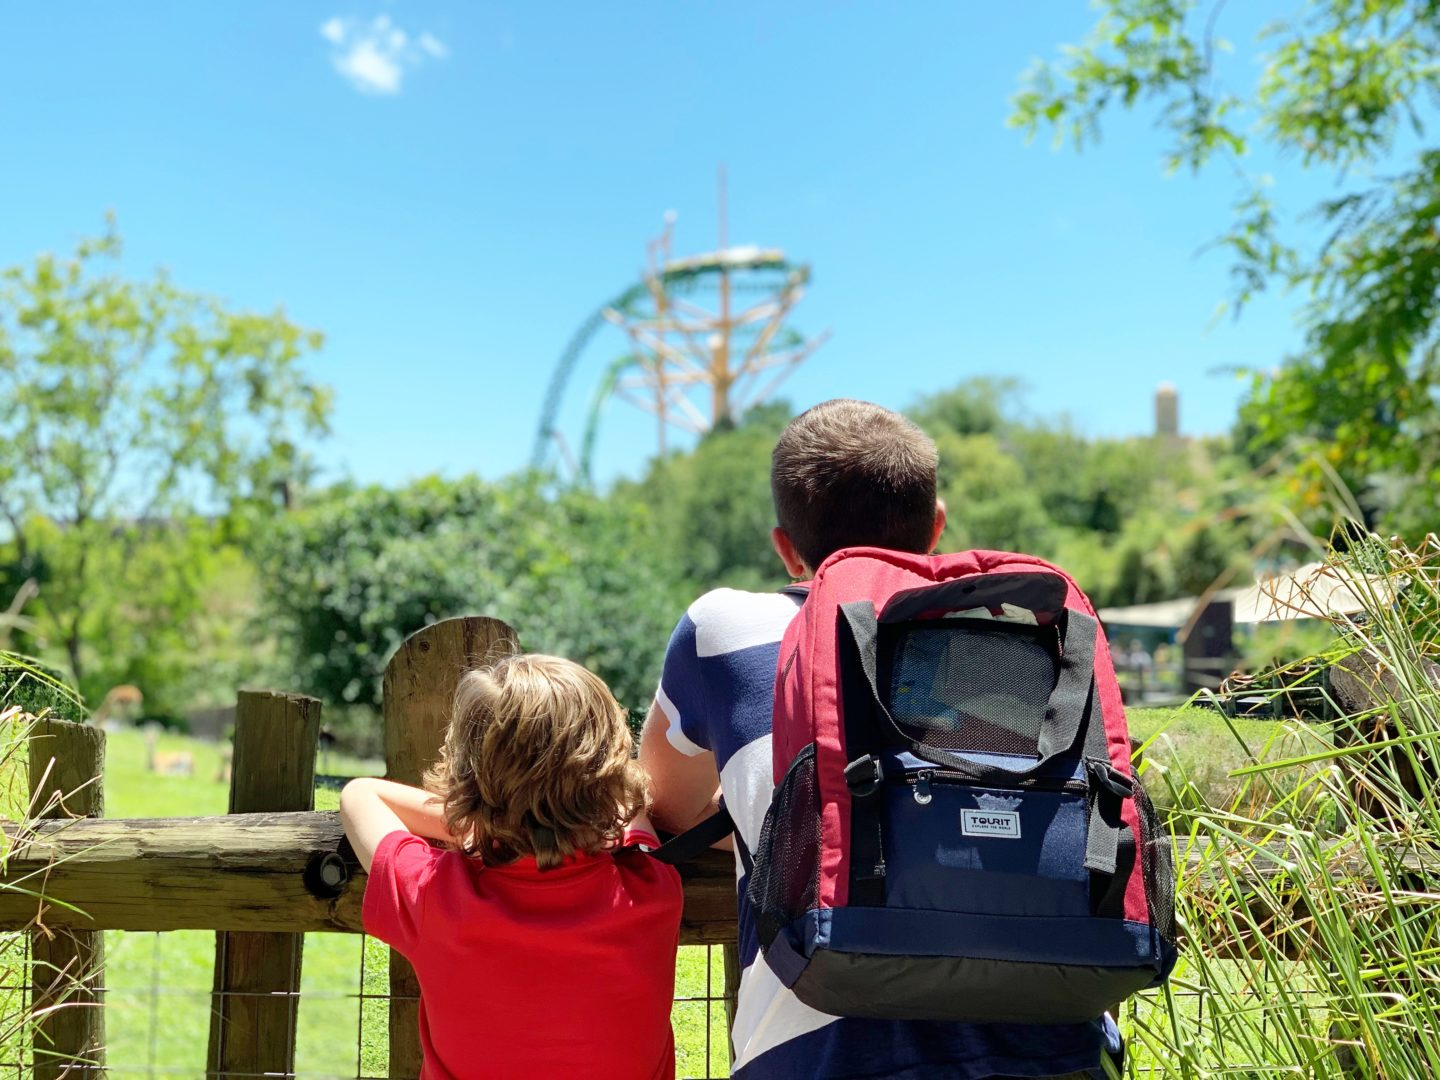 What to pack for a trip to the Florida theme parks